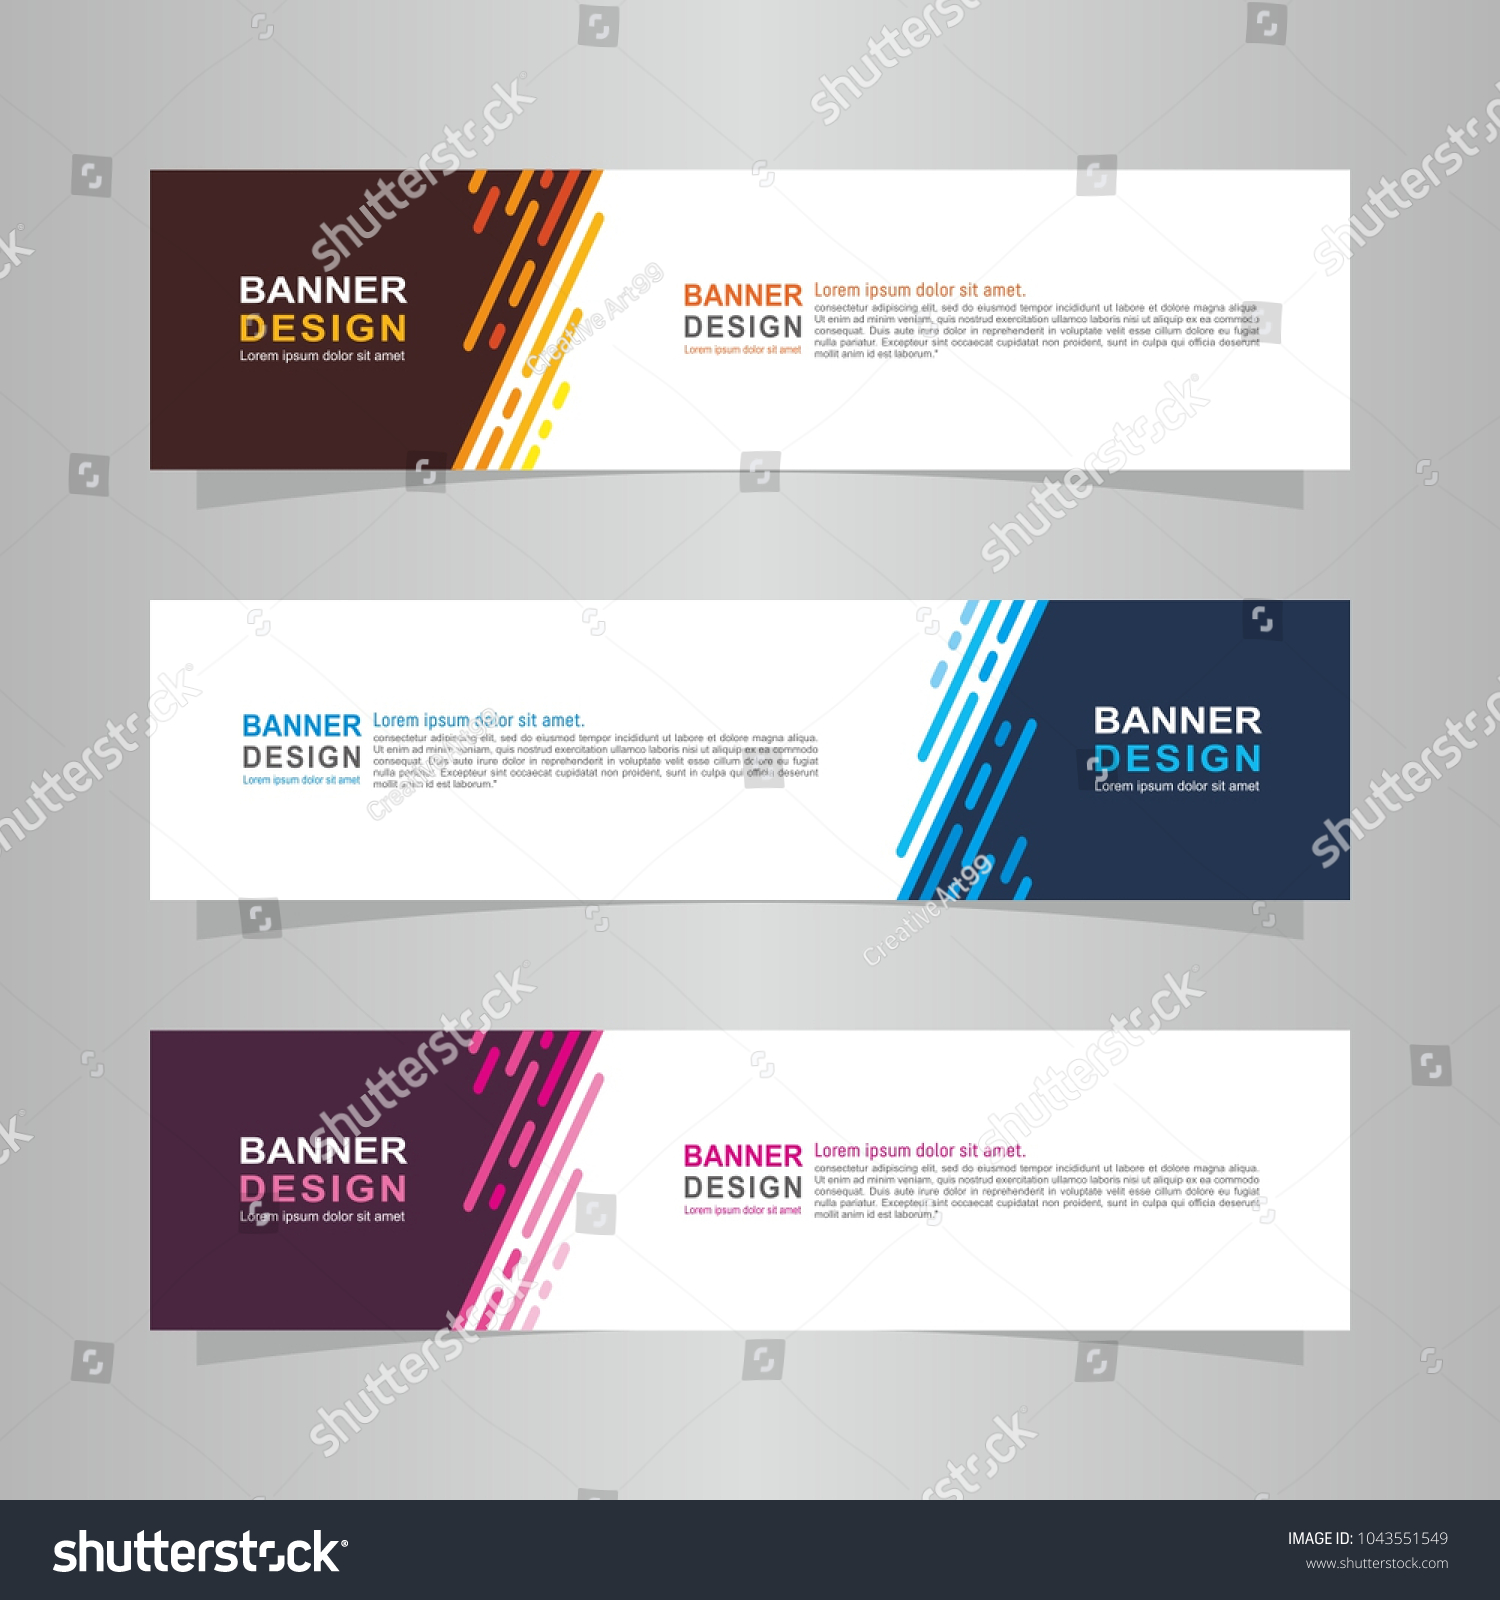 Vector abstract web banner background design template. | EZ Canvas